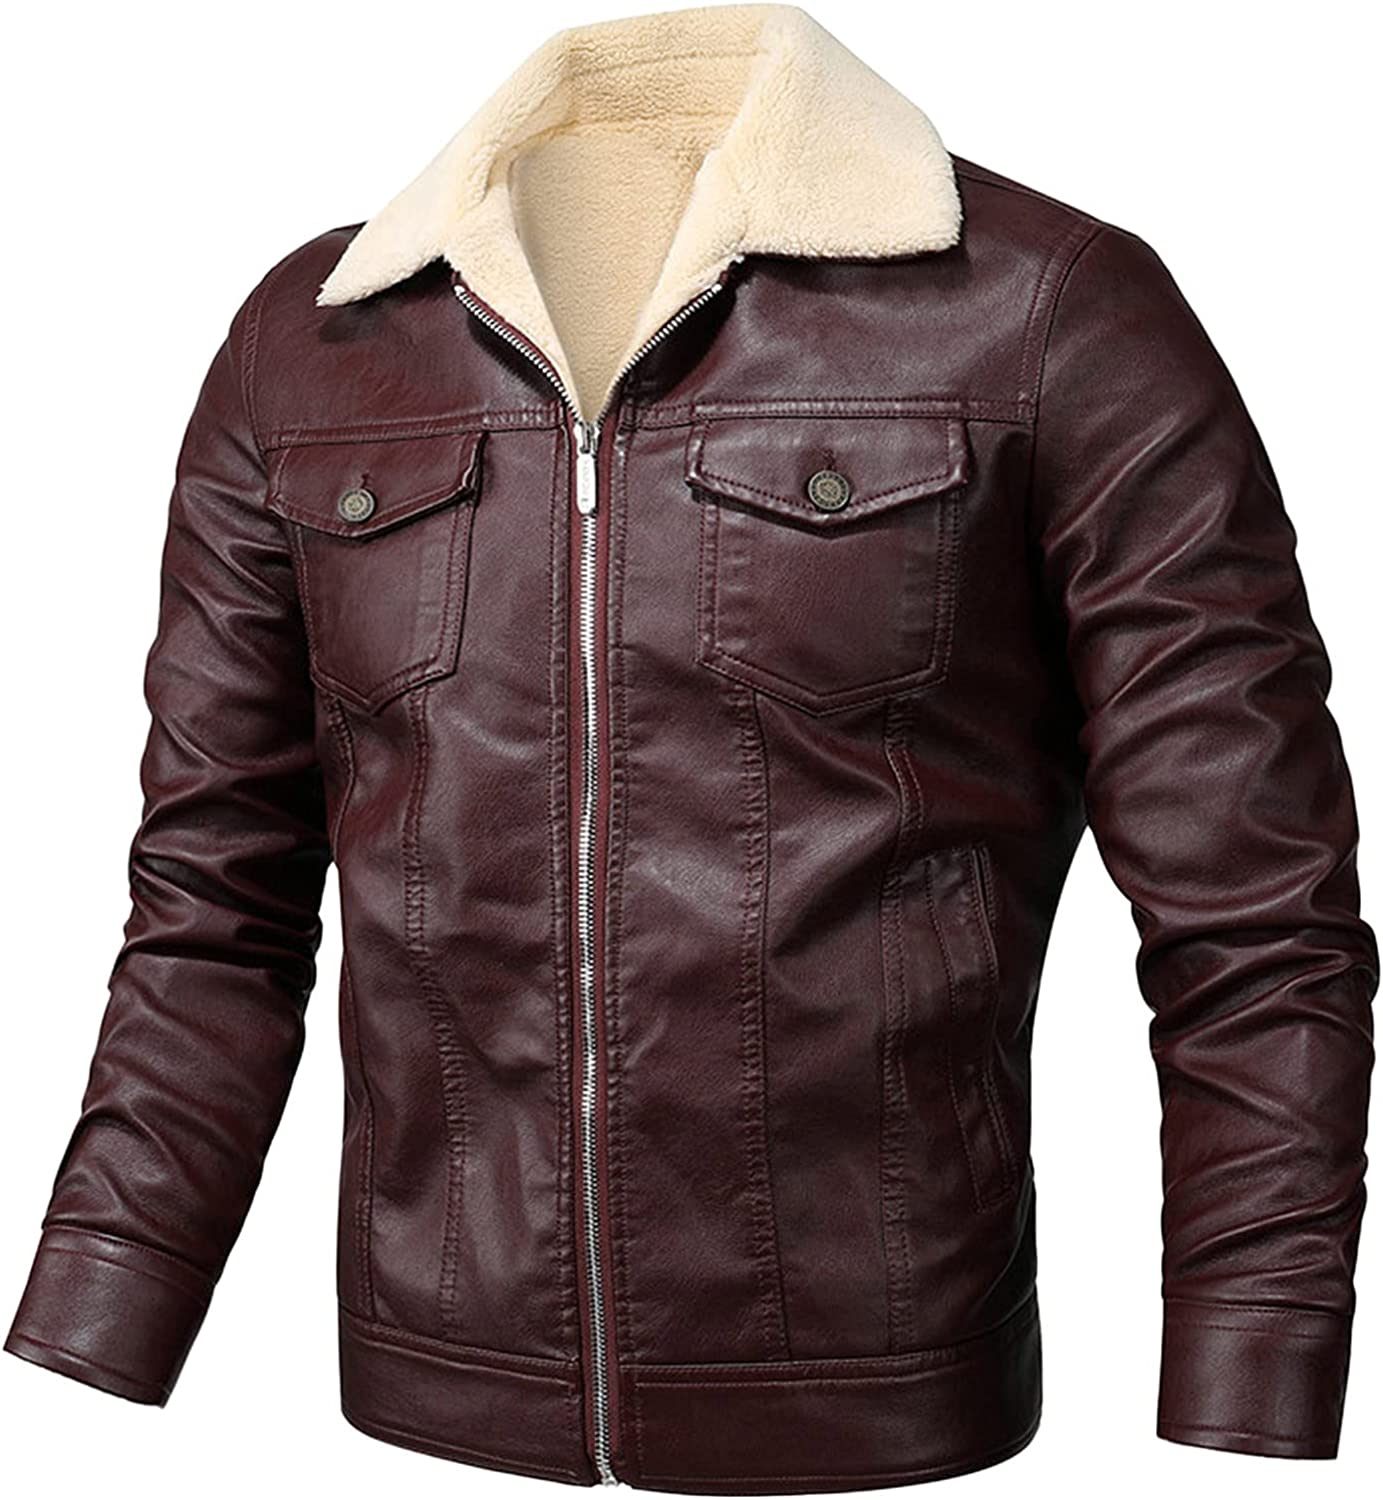 ZDNB 2021 Men Leisure Plus Cashmere Hooded Faux Leather Jacket Loose Stand Collar Zip-Up Motorcycle Bomber Coat Jacket